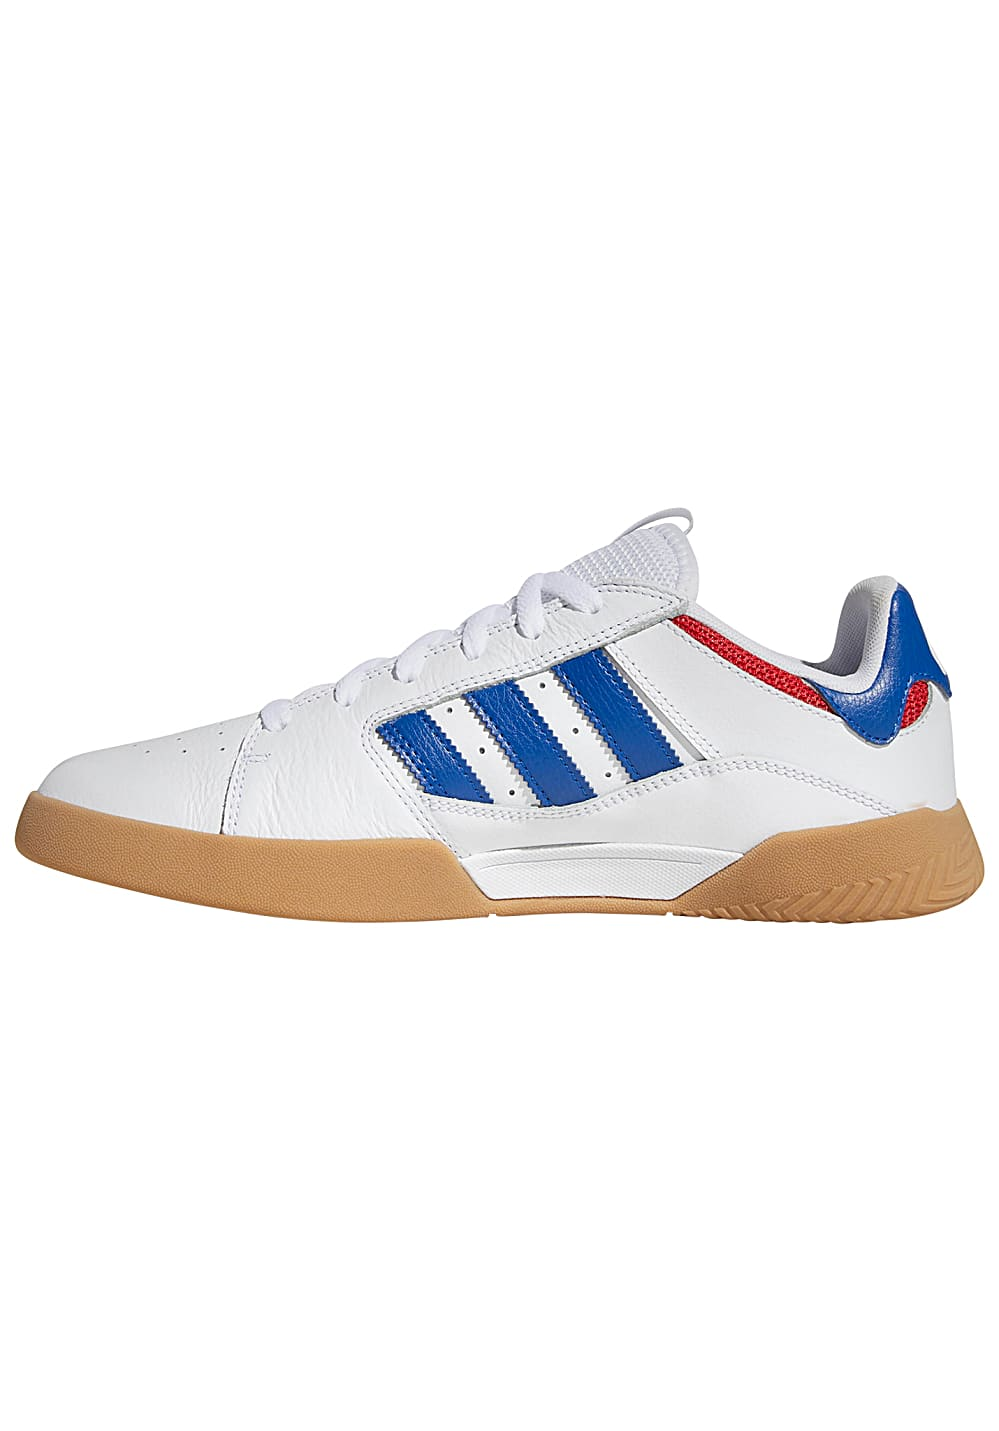 Adidas Skateboarding VRX Low Baskets pour Homme Blanc